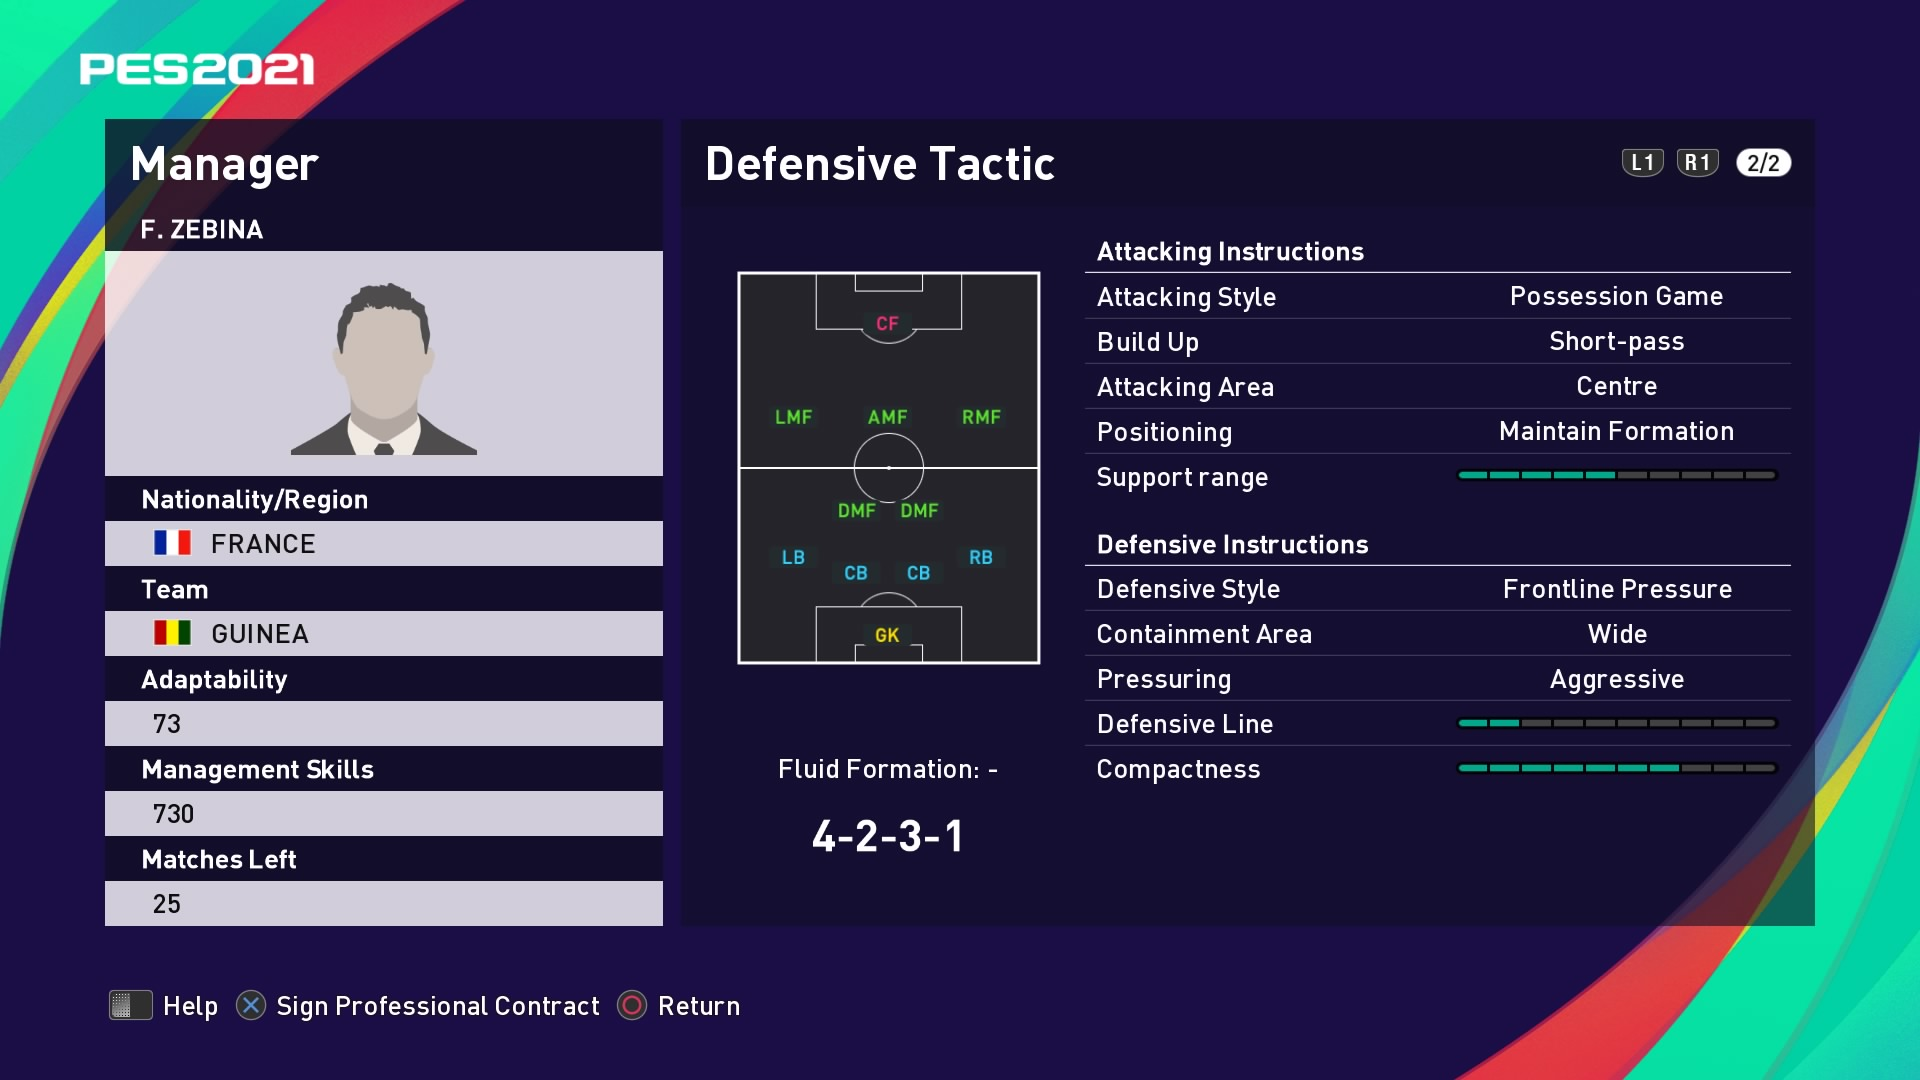 F. Zebina (Didier Six) Defensive Tactic in PES 2021 myClub